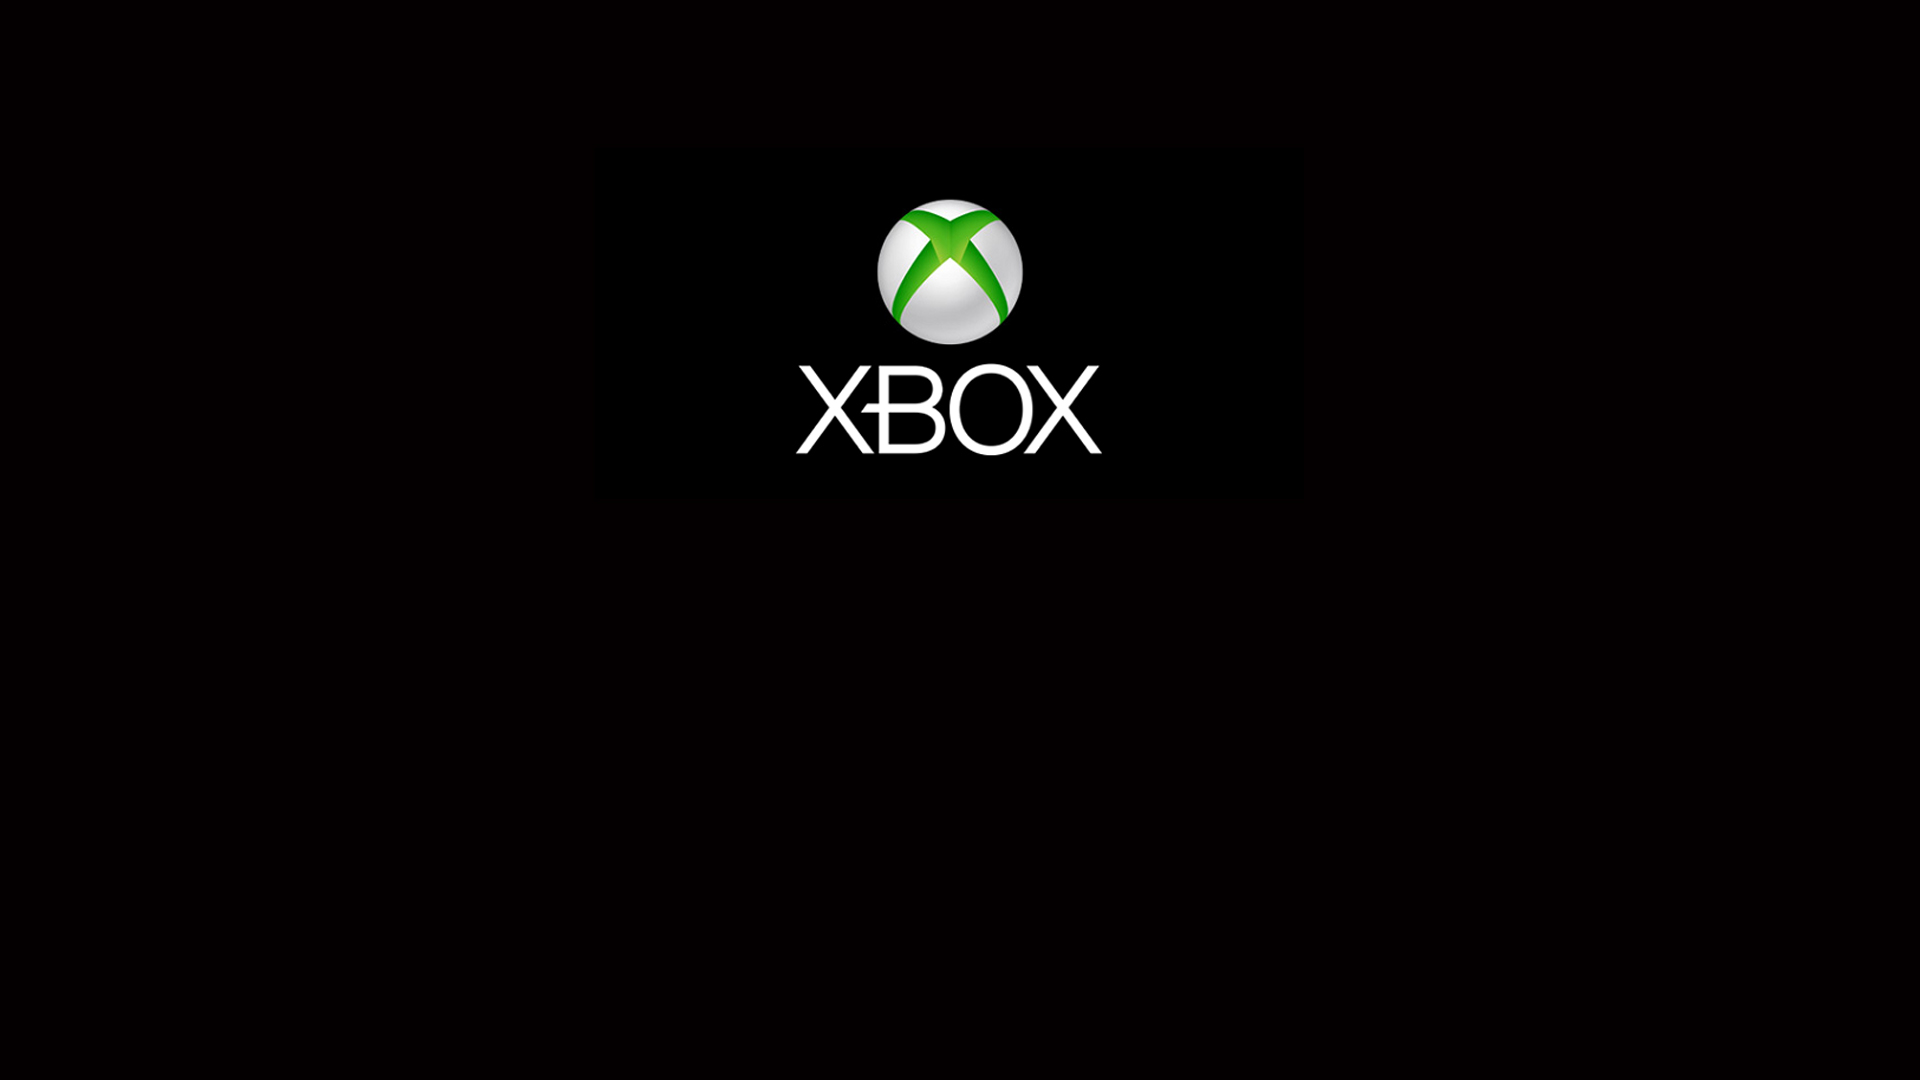 File Name 921138 HD Xbox Wallpapers Download   921138 1920x1080